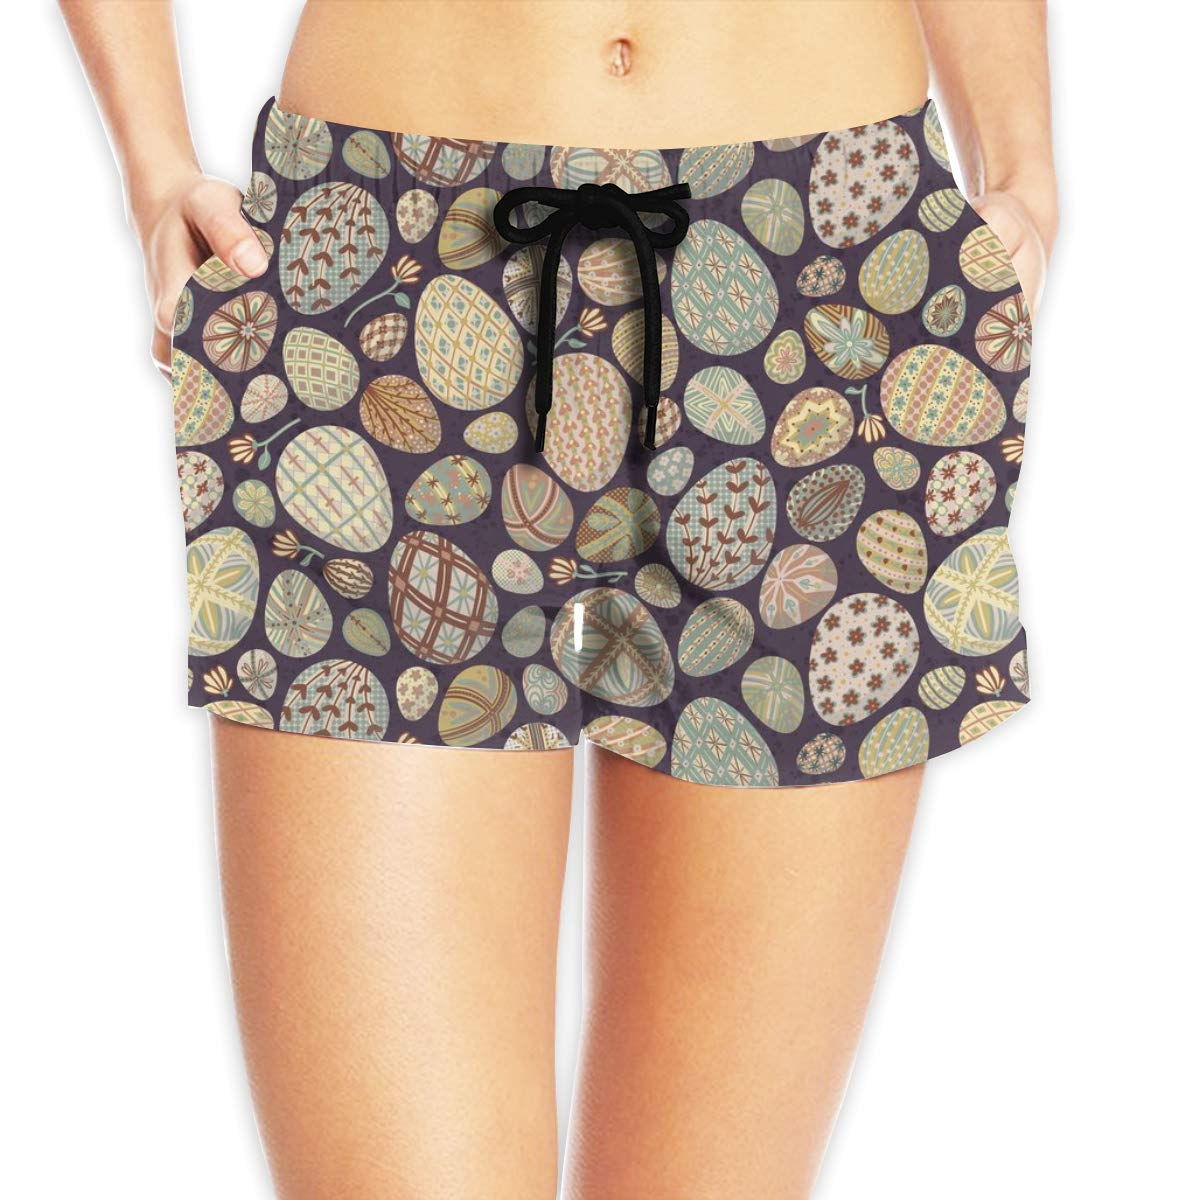 Unpredictable Painted Easter Eggs Womens Athletic Board Shorts Quickly Dry Beach Pant